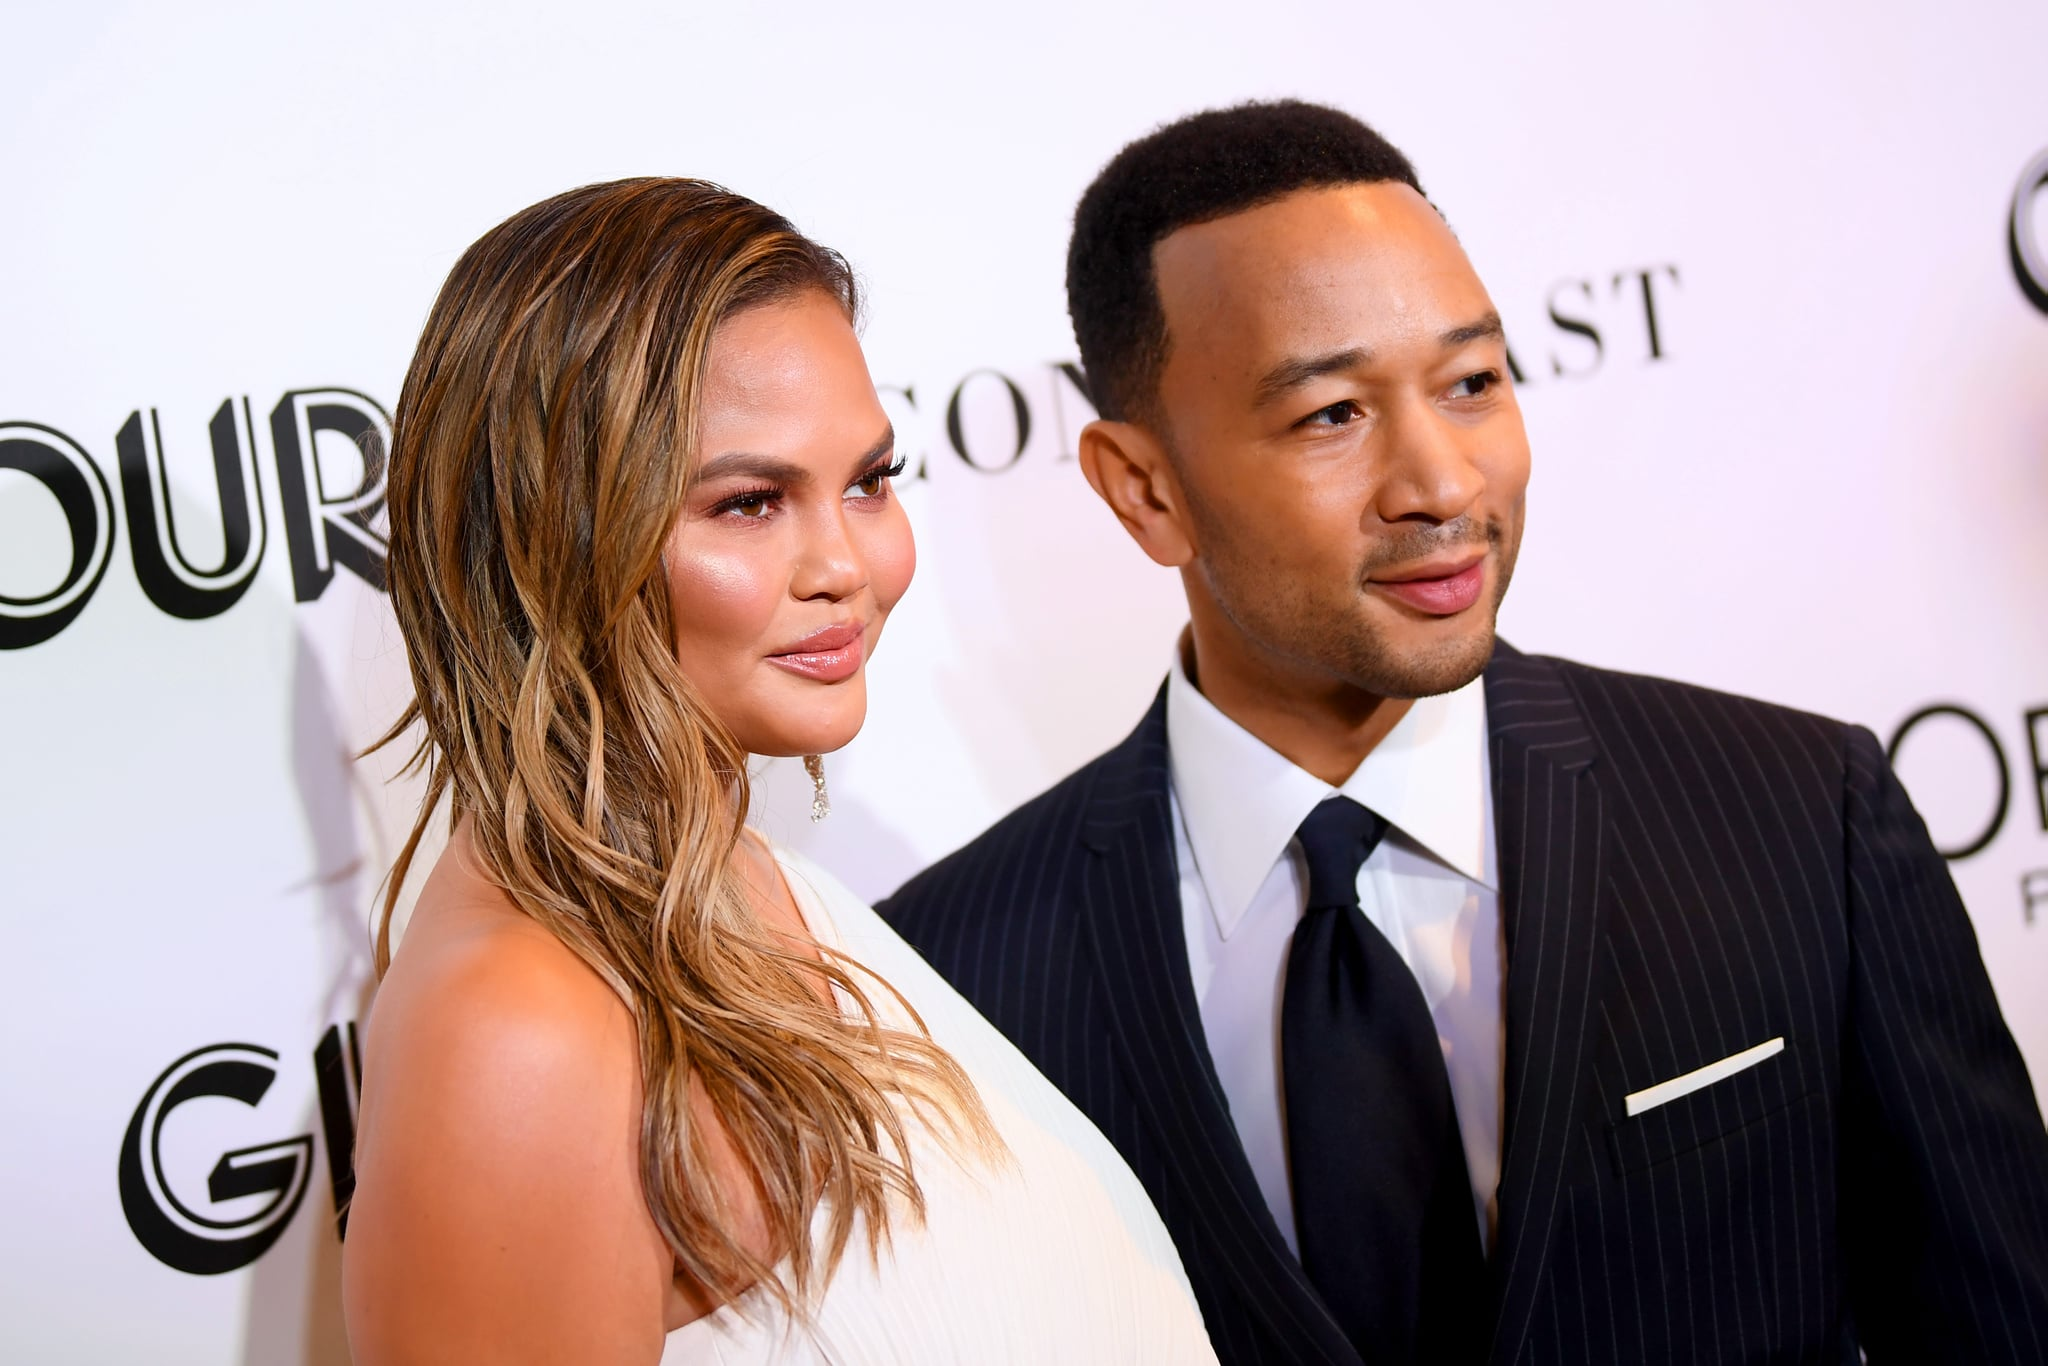 NEW YORK, NY - NOVEMBER 12:  Chrissy Teigen and John Legend attend the 2018 Glamour Women Of The Year Awards: Women Rise on November 12, 2018 in New York City.  (Photo by Dimitrios Kambouris/Getty Images for Glamour)